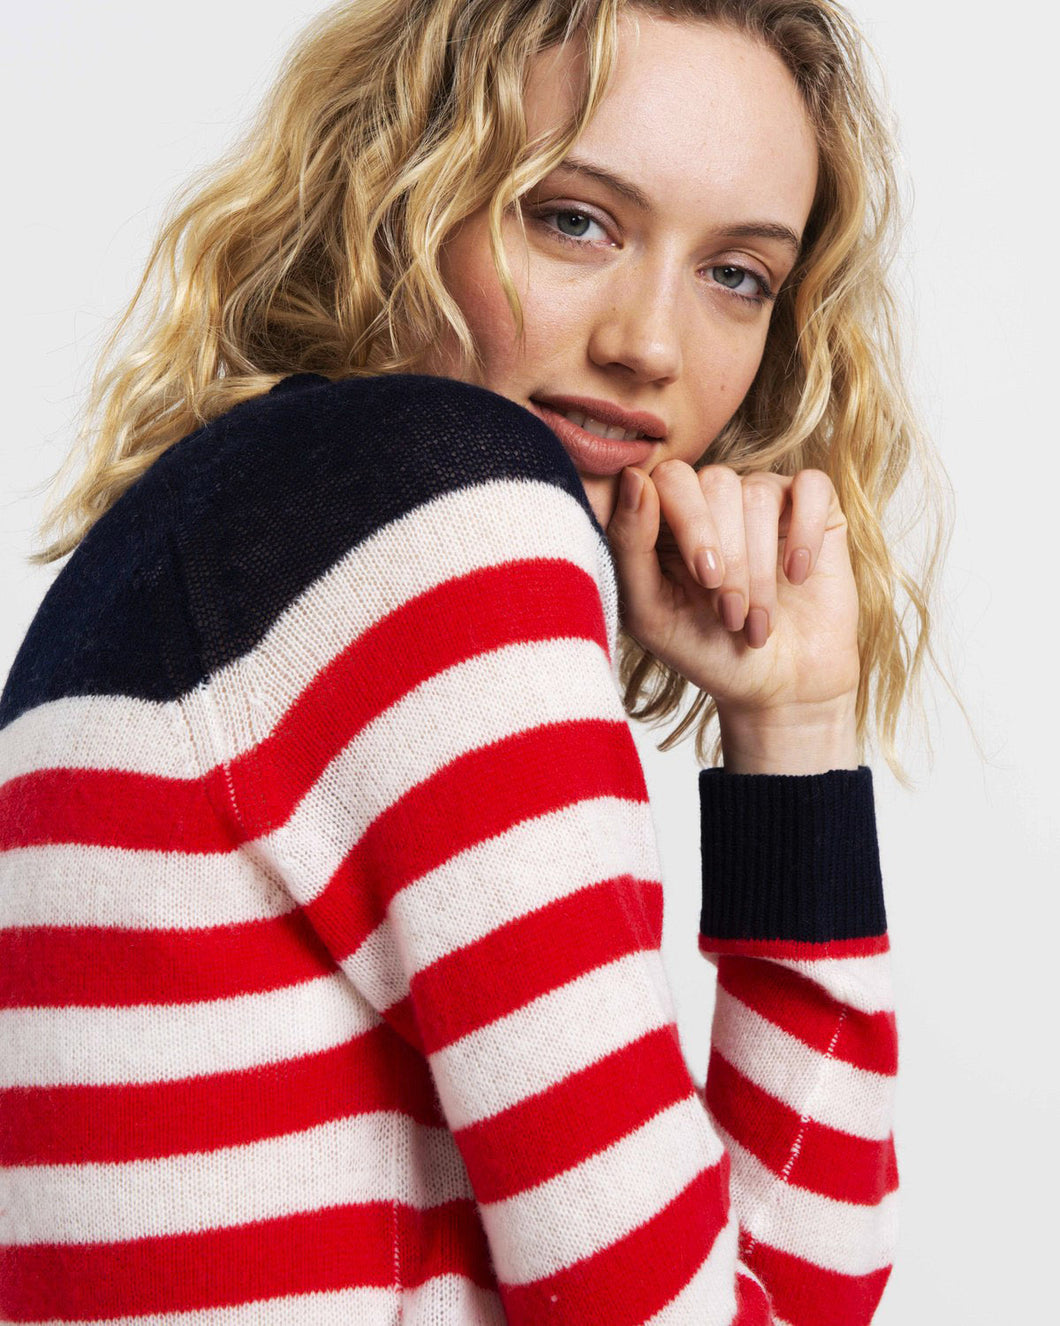 Cassie Cashmere in Navy and Red